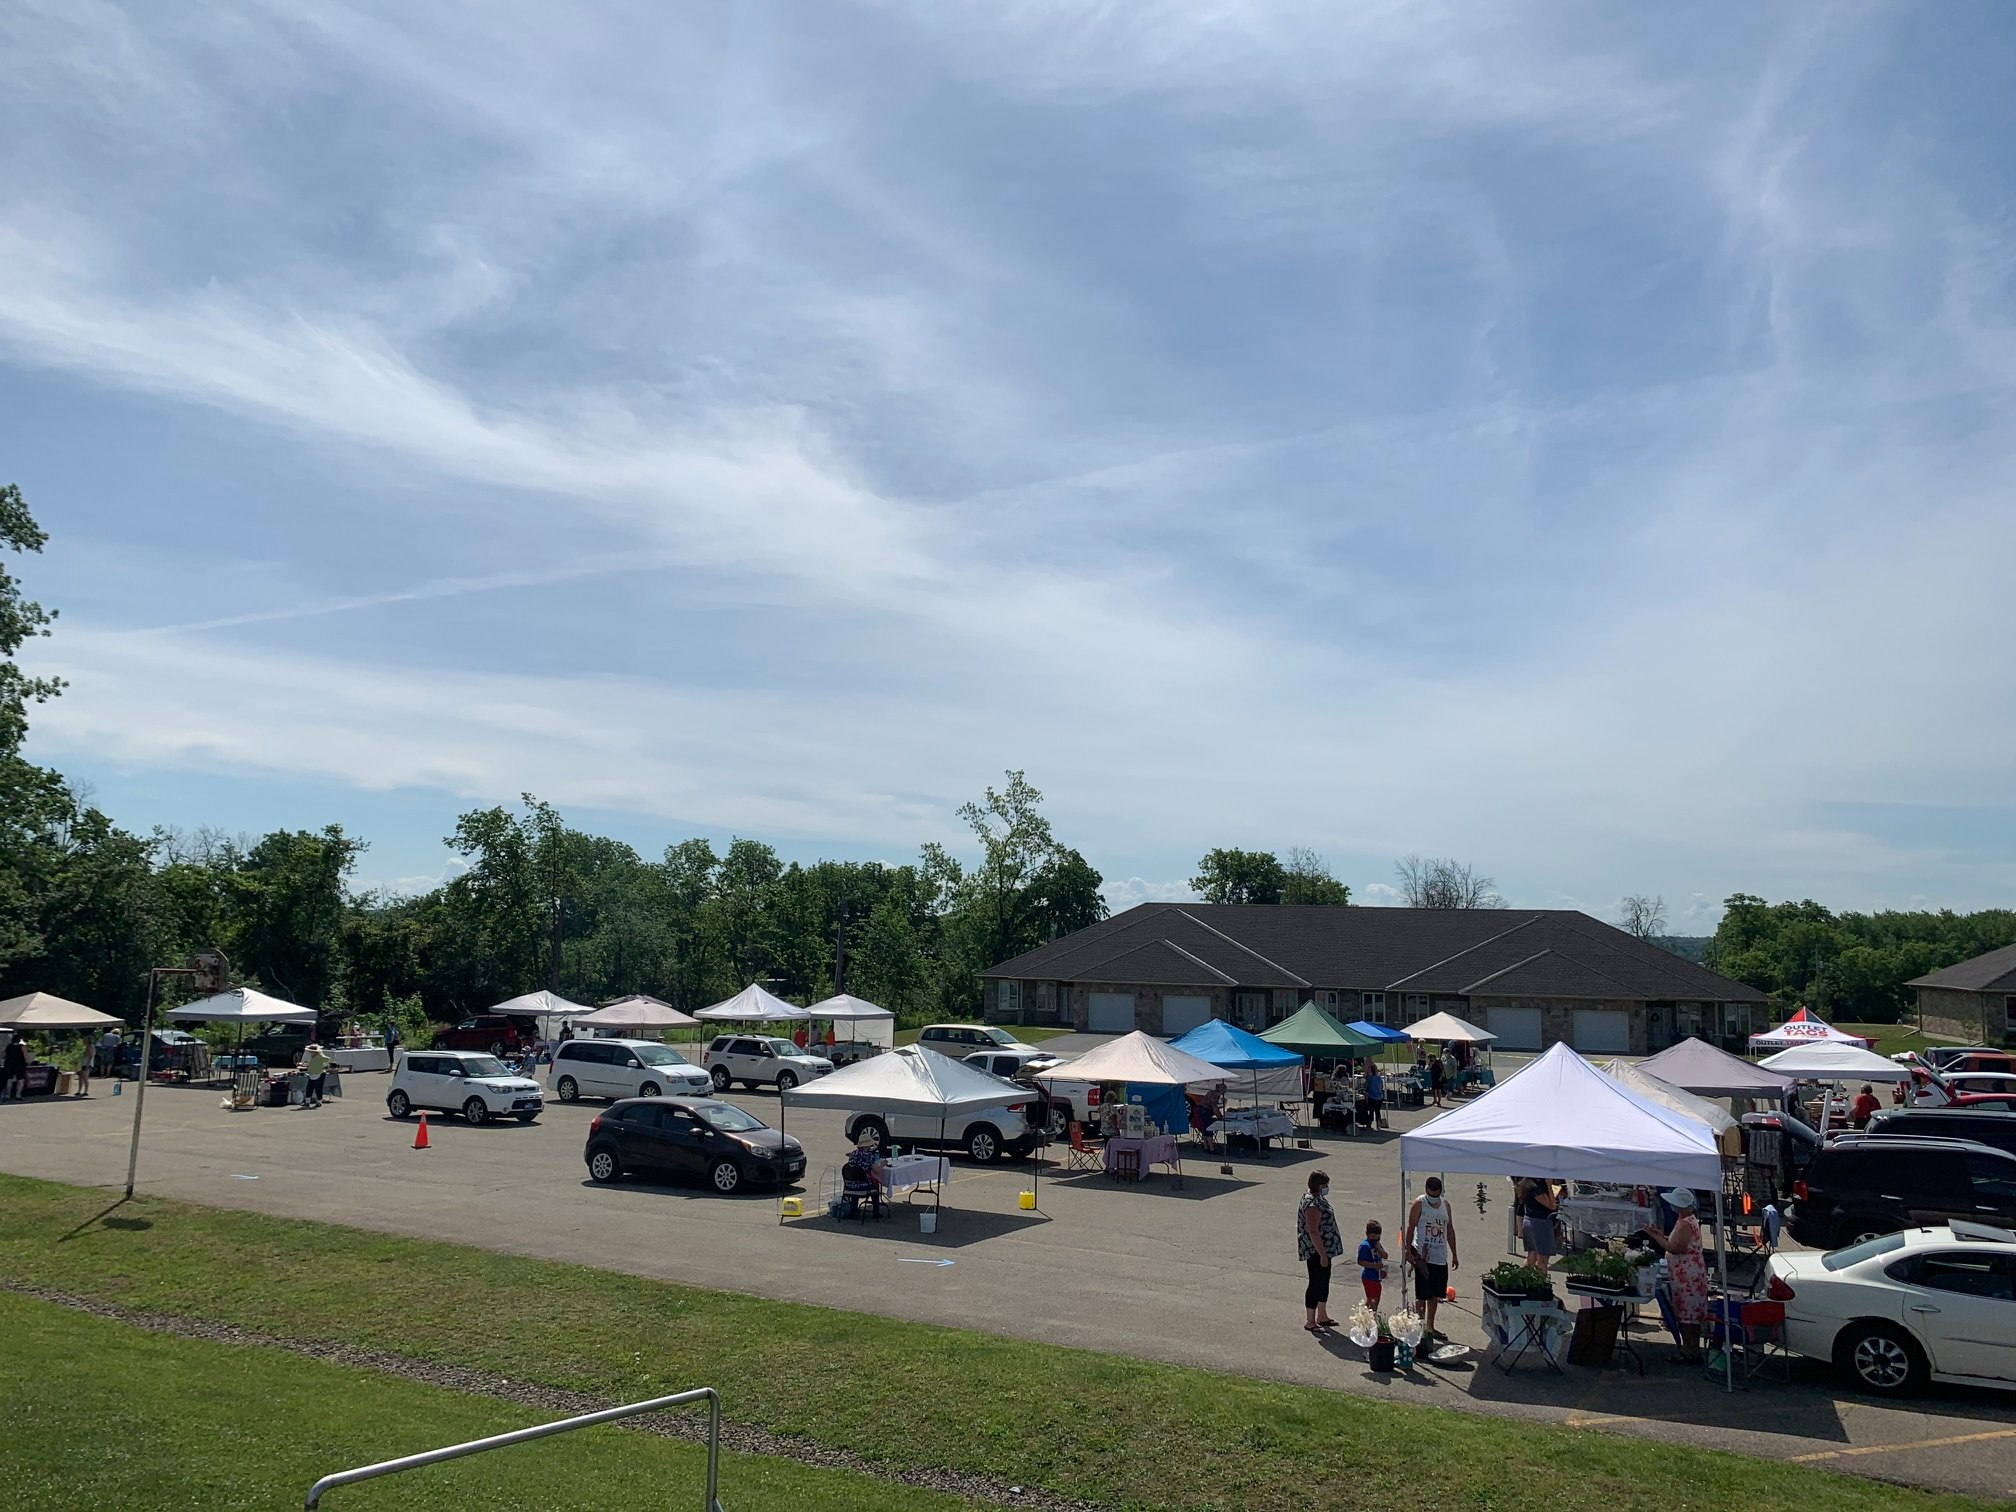 tents set up at the farmer's & craft market June 12, 2021